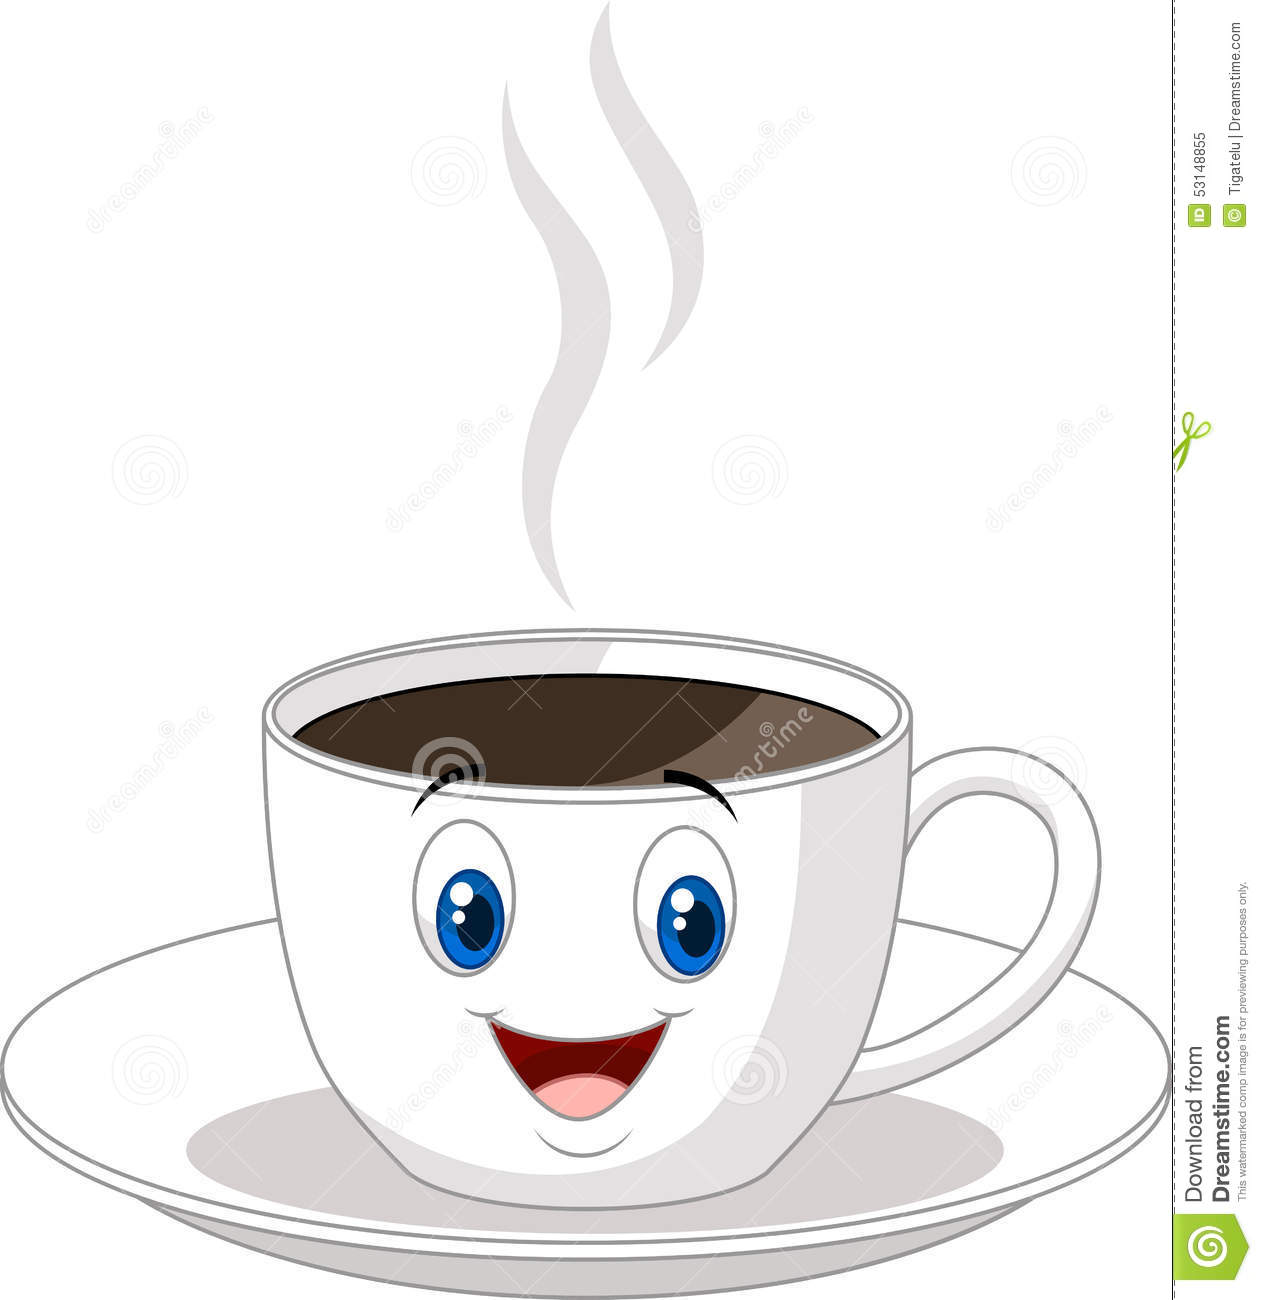 Cartoon Cup Of Coffee Stock Vector - Image: 53148855